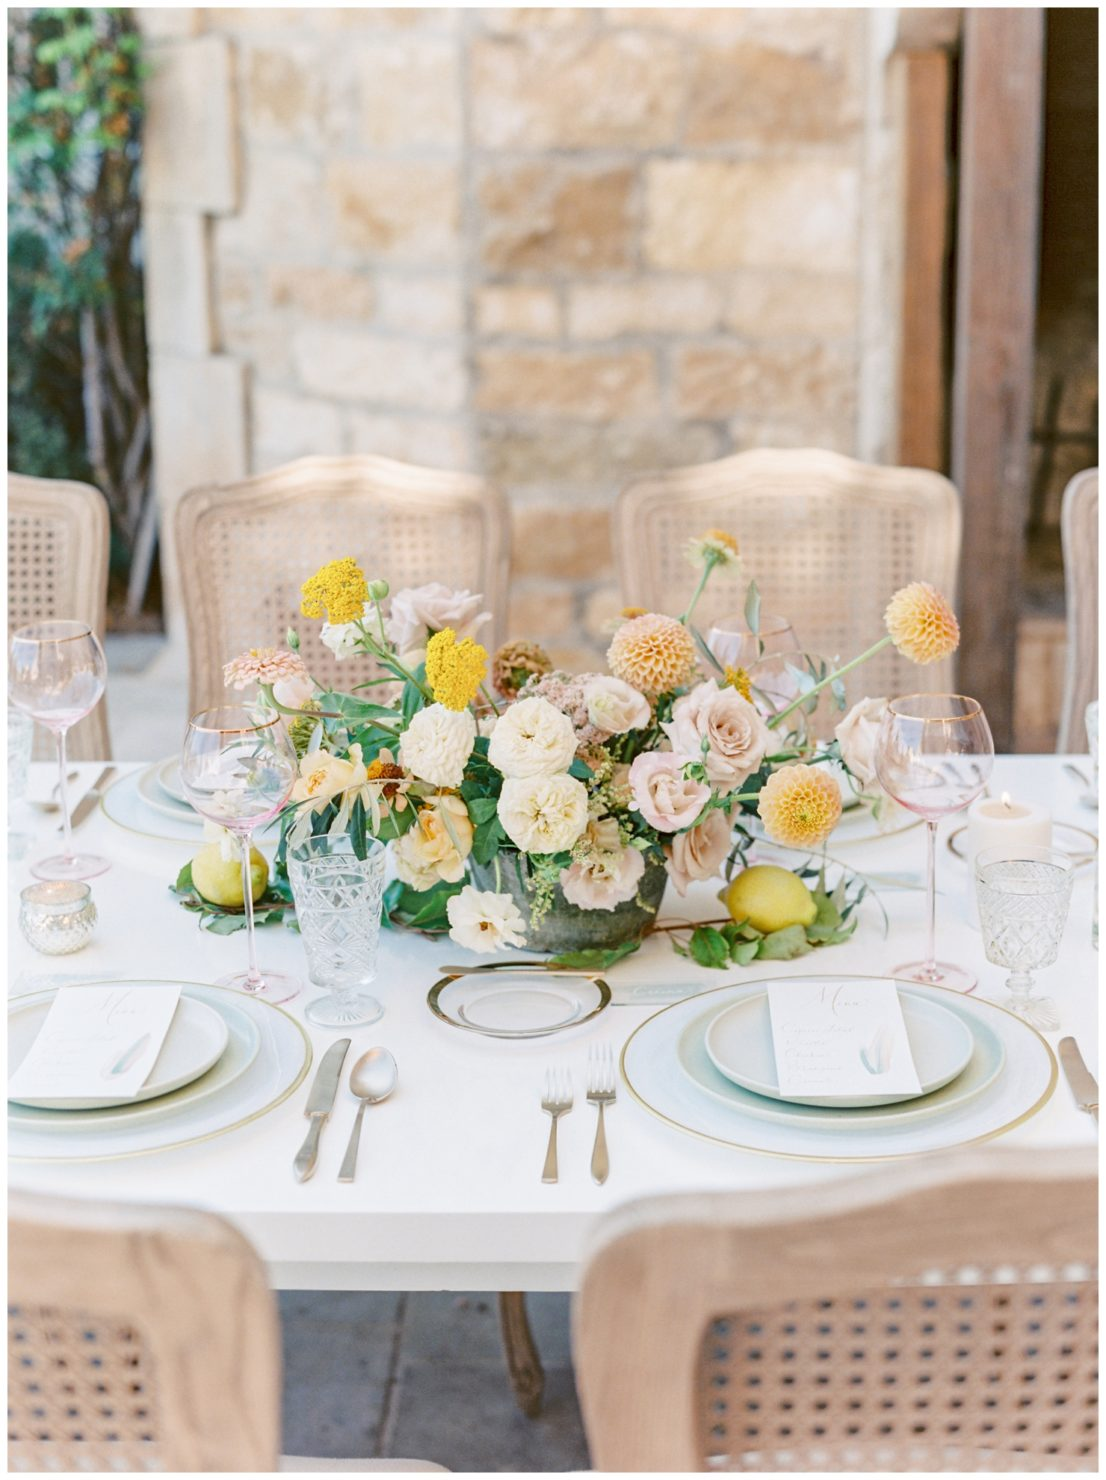 Stylish And Summery Wedding At A Winery In Greece Flower Arrangement